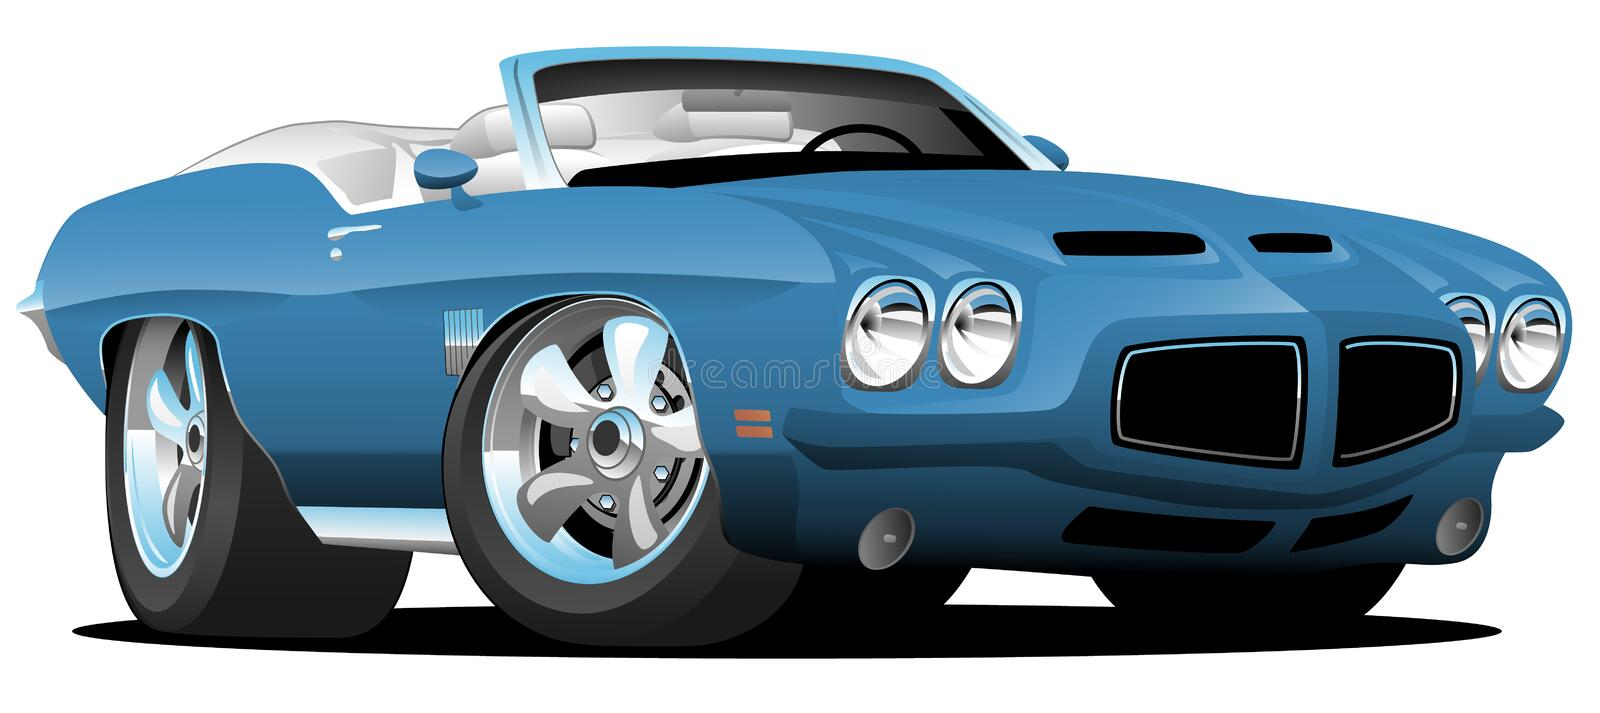 Classic Seventies Style American Convertible Muscle Car Cartoon Vector Illustration vector illustration